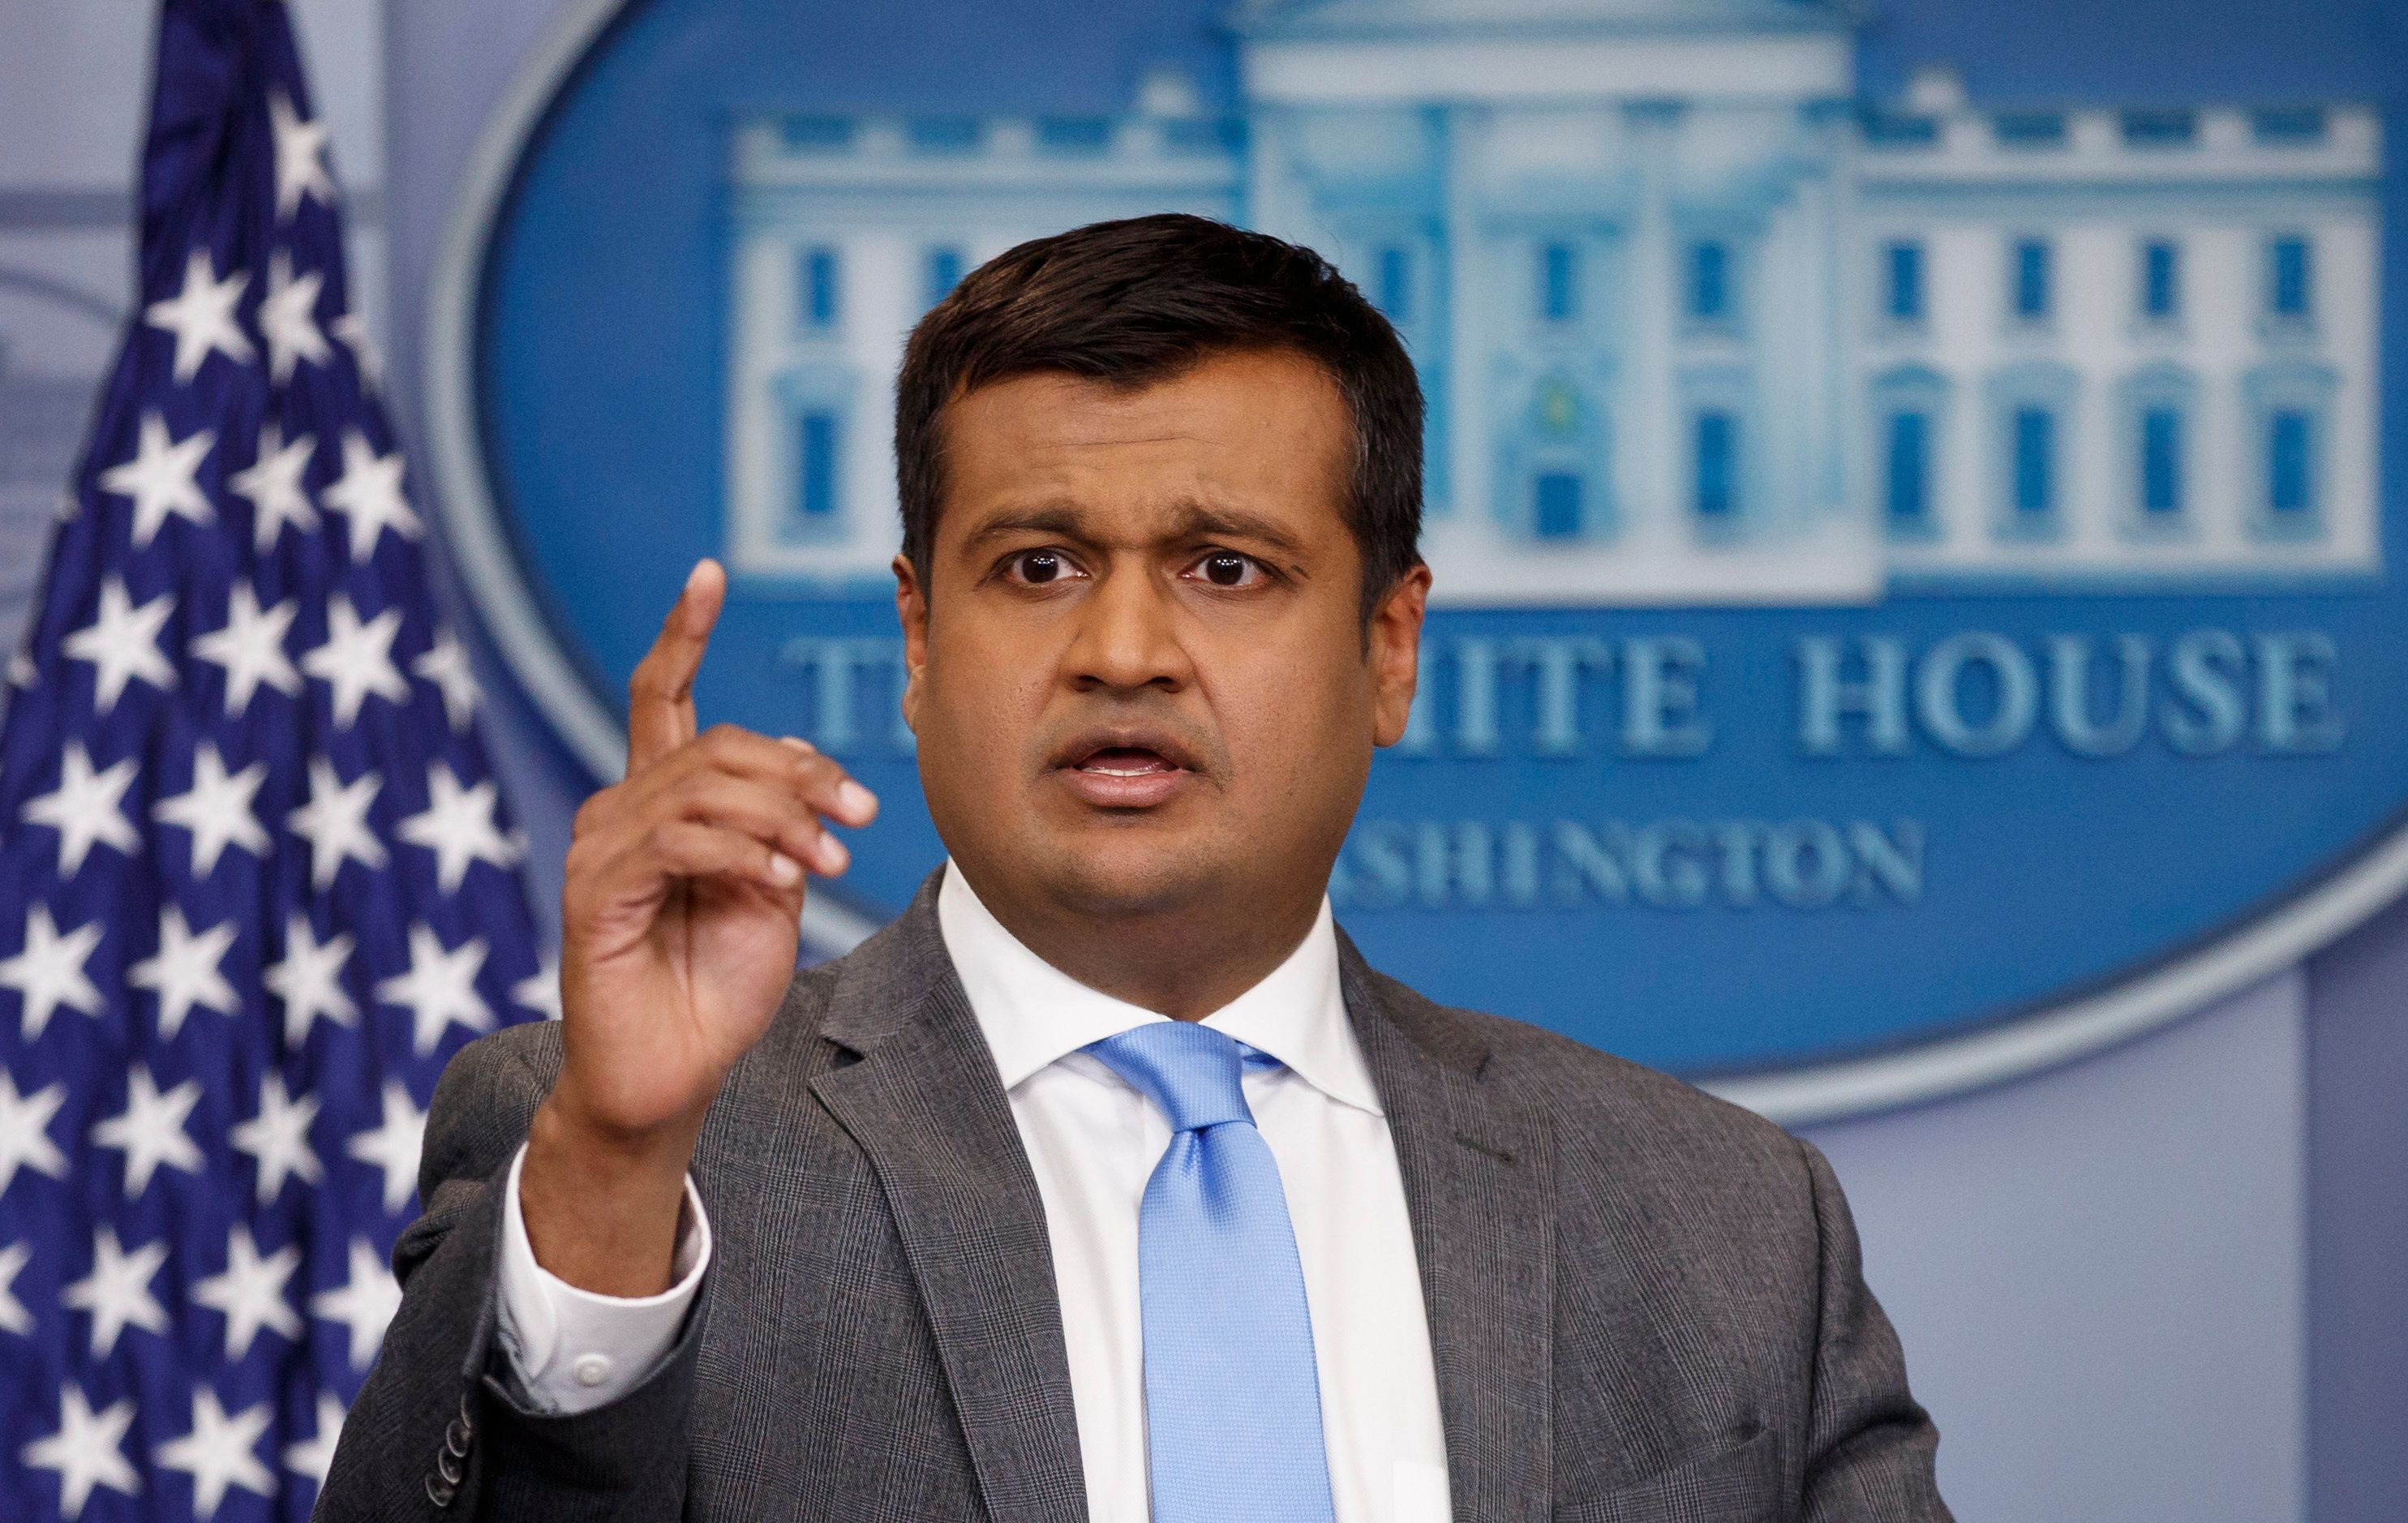 White House principal deputy press secretary Raj Shah speaks during the daily news briefing at the White House, in Washington, Monday, March 26, 2018.(AP Photo/Carolyn Kaster)